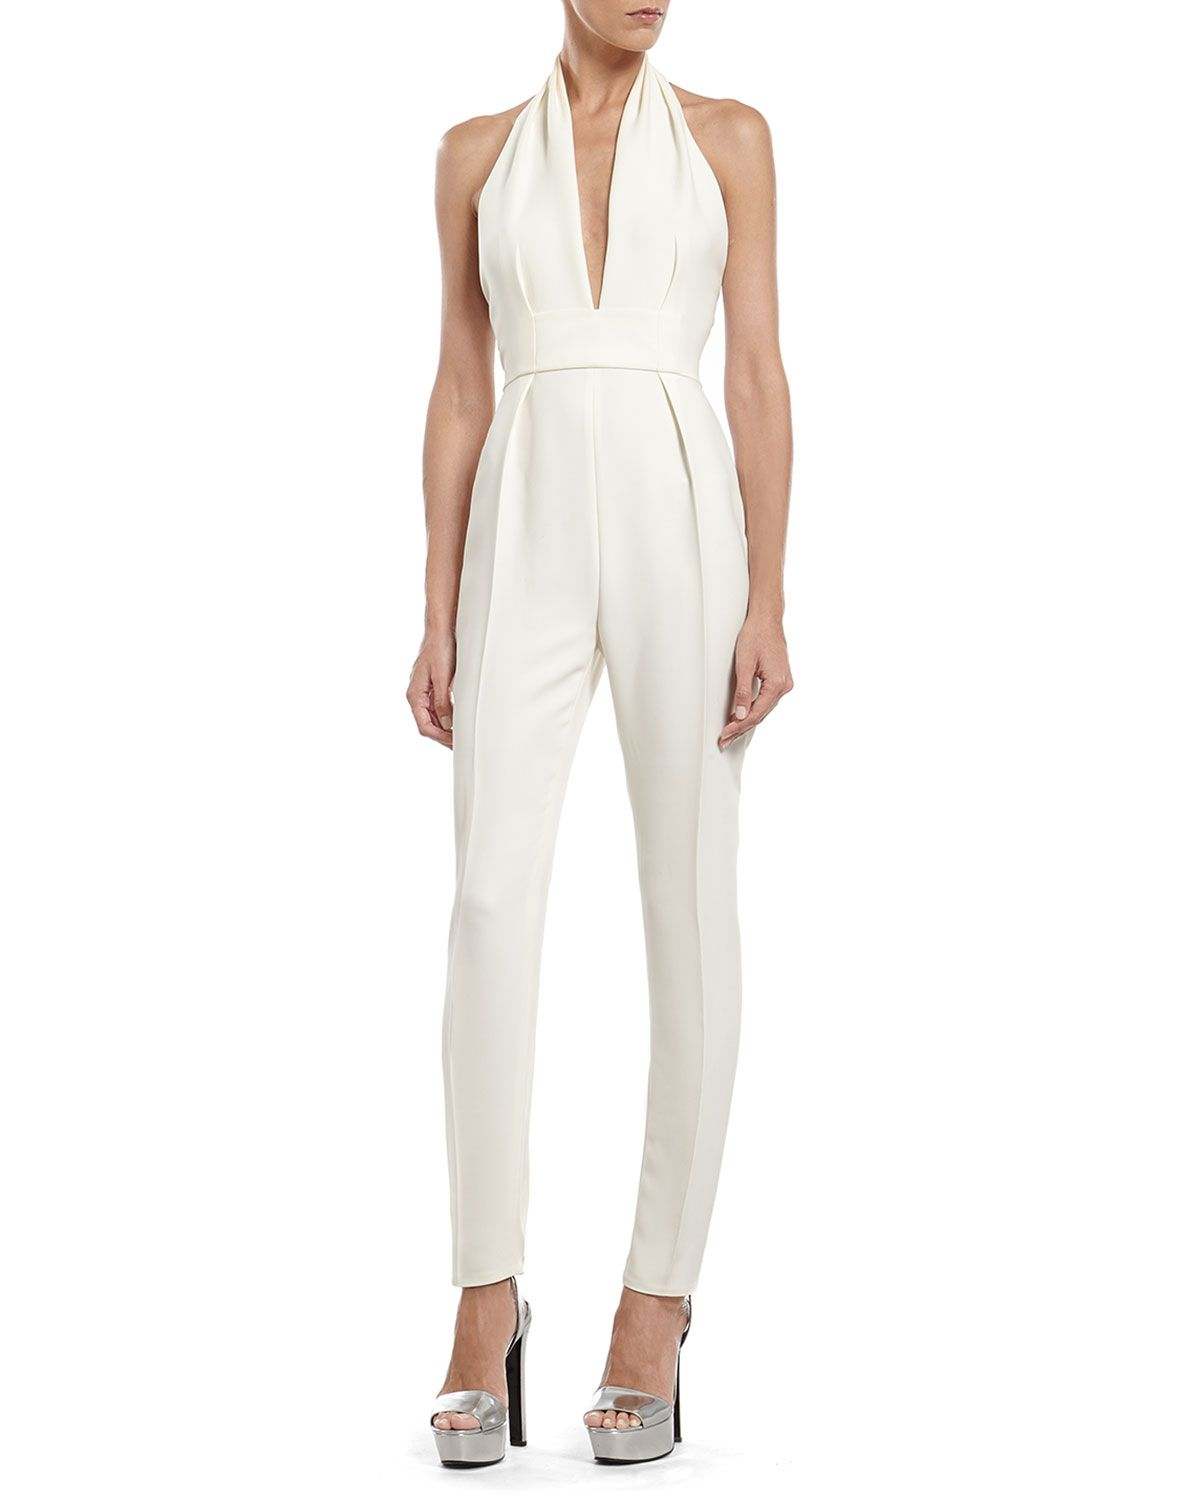 acca3836c7f9 Gucci Pearl White Silk Cady Jumpsuit